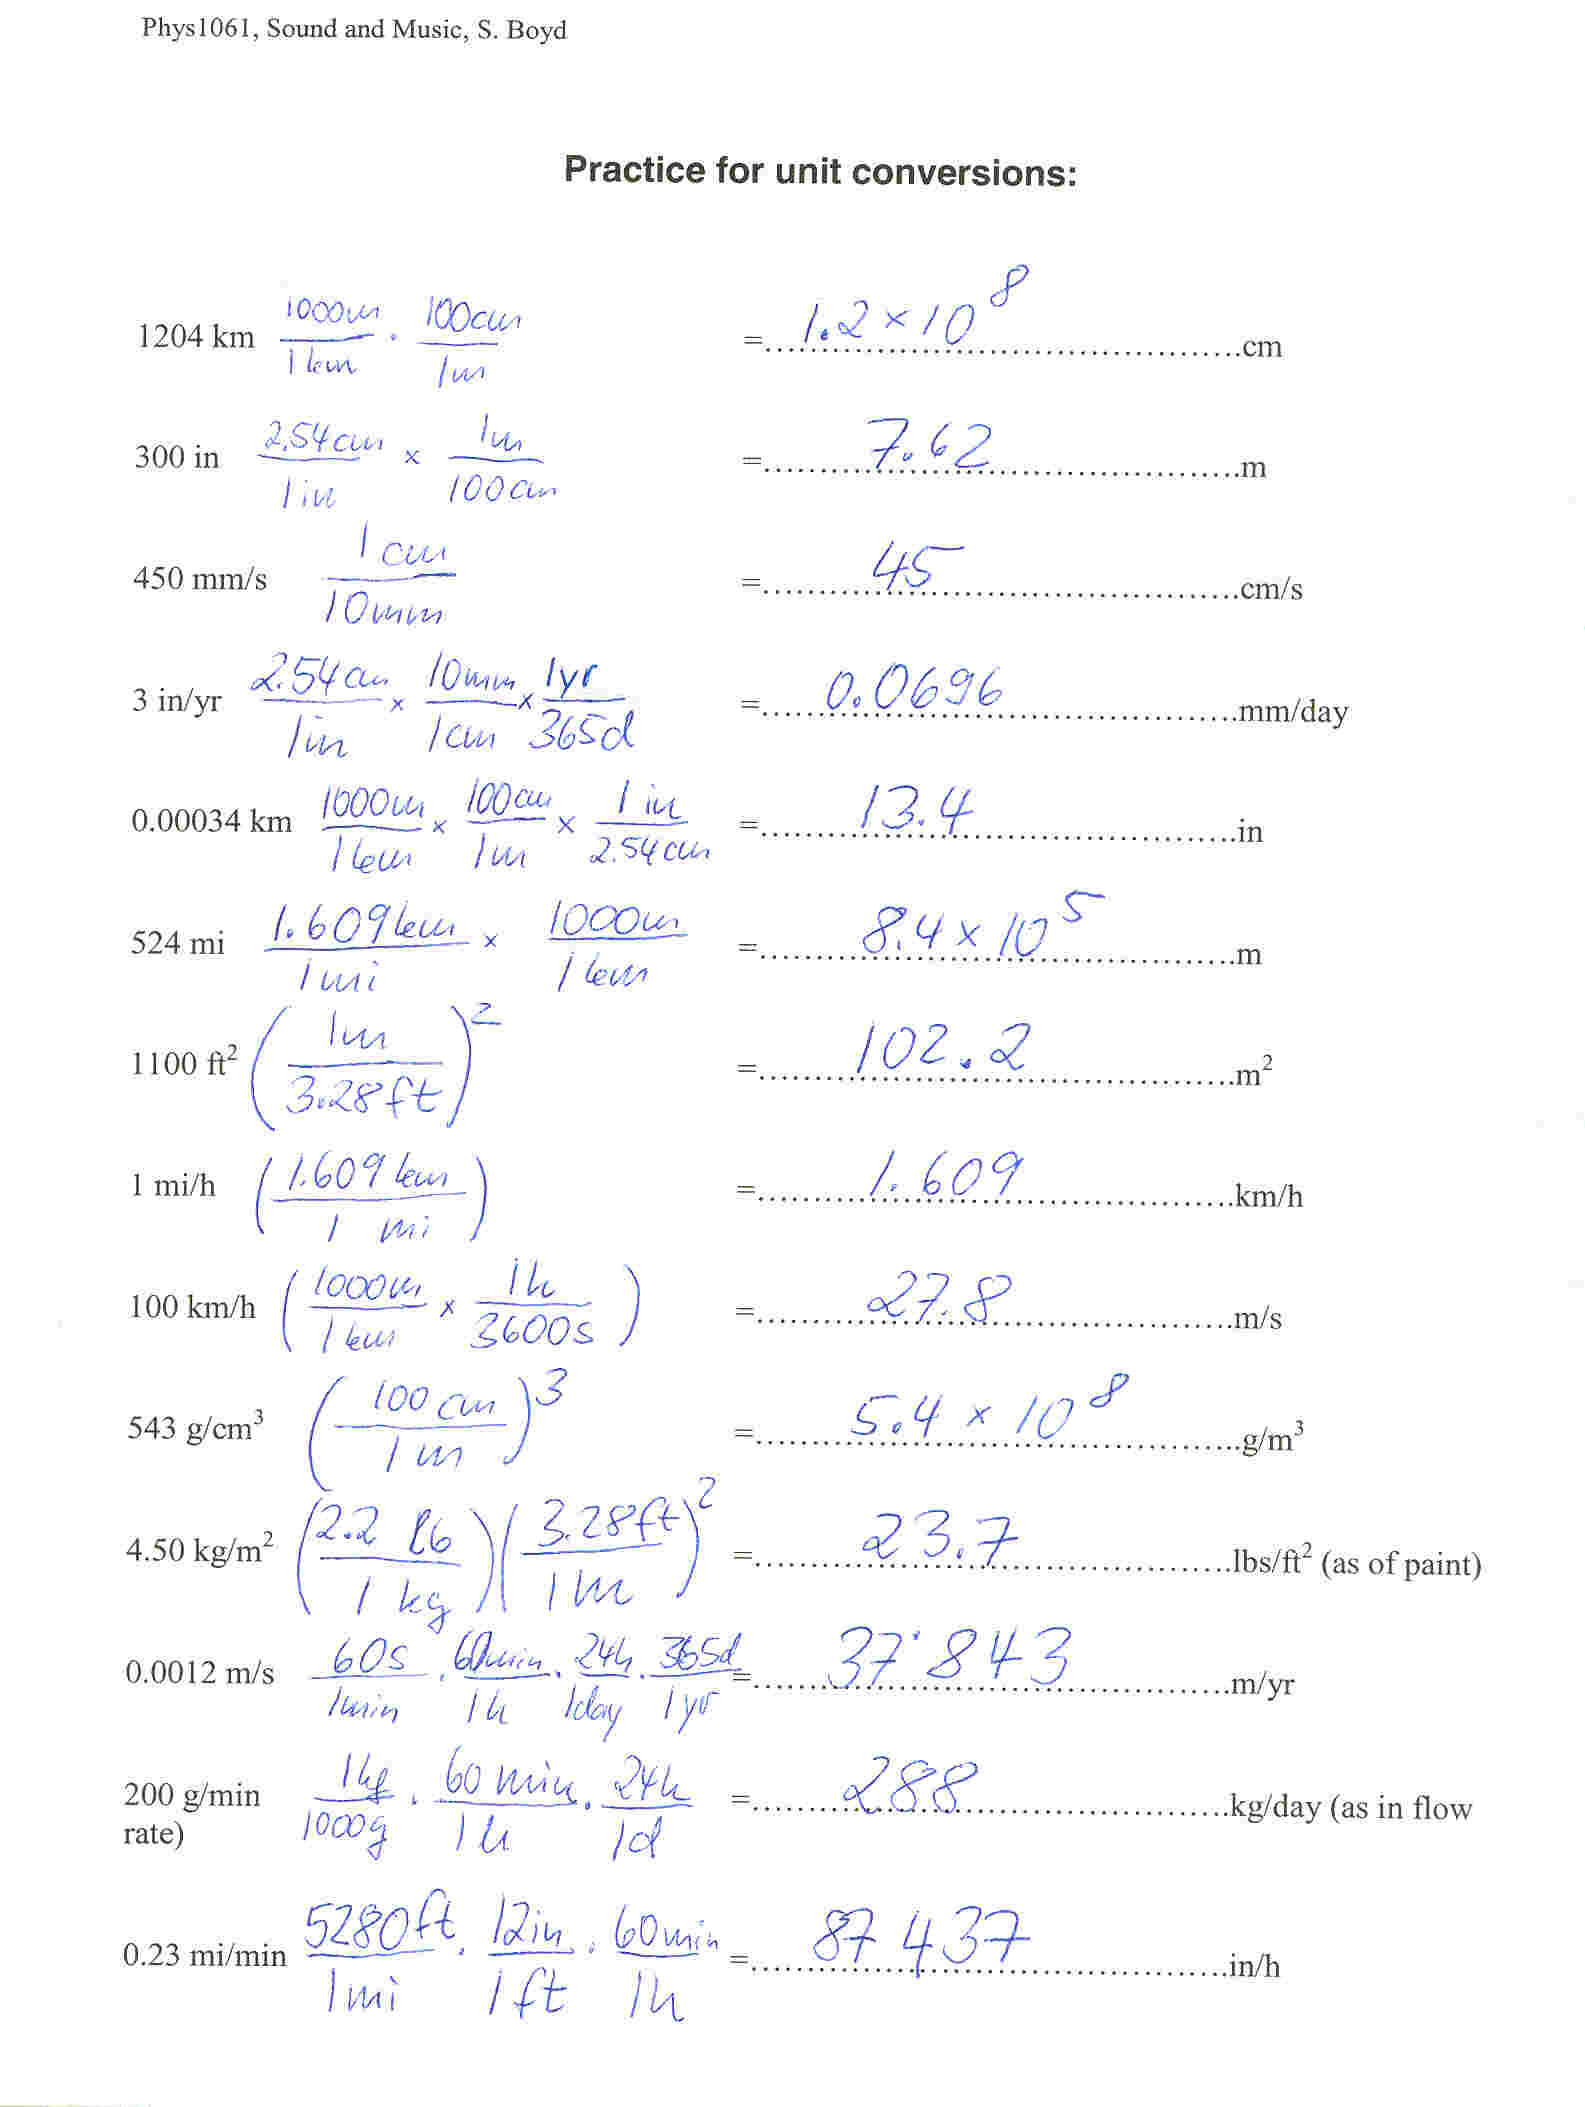 unit conversions worksheet answers Madratco – Unit Conversions Worksheet